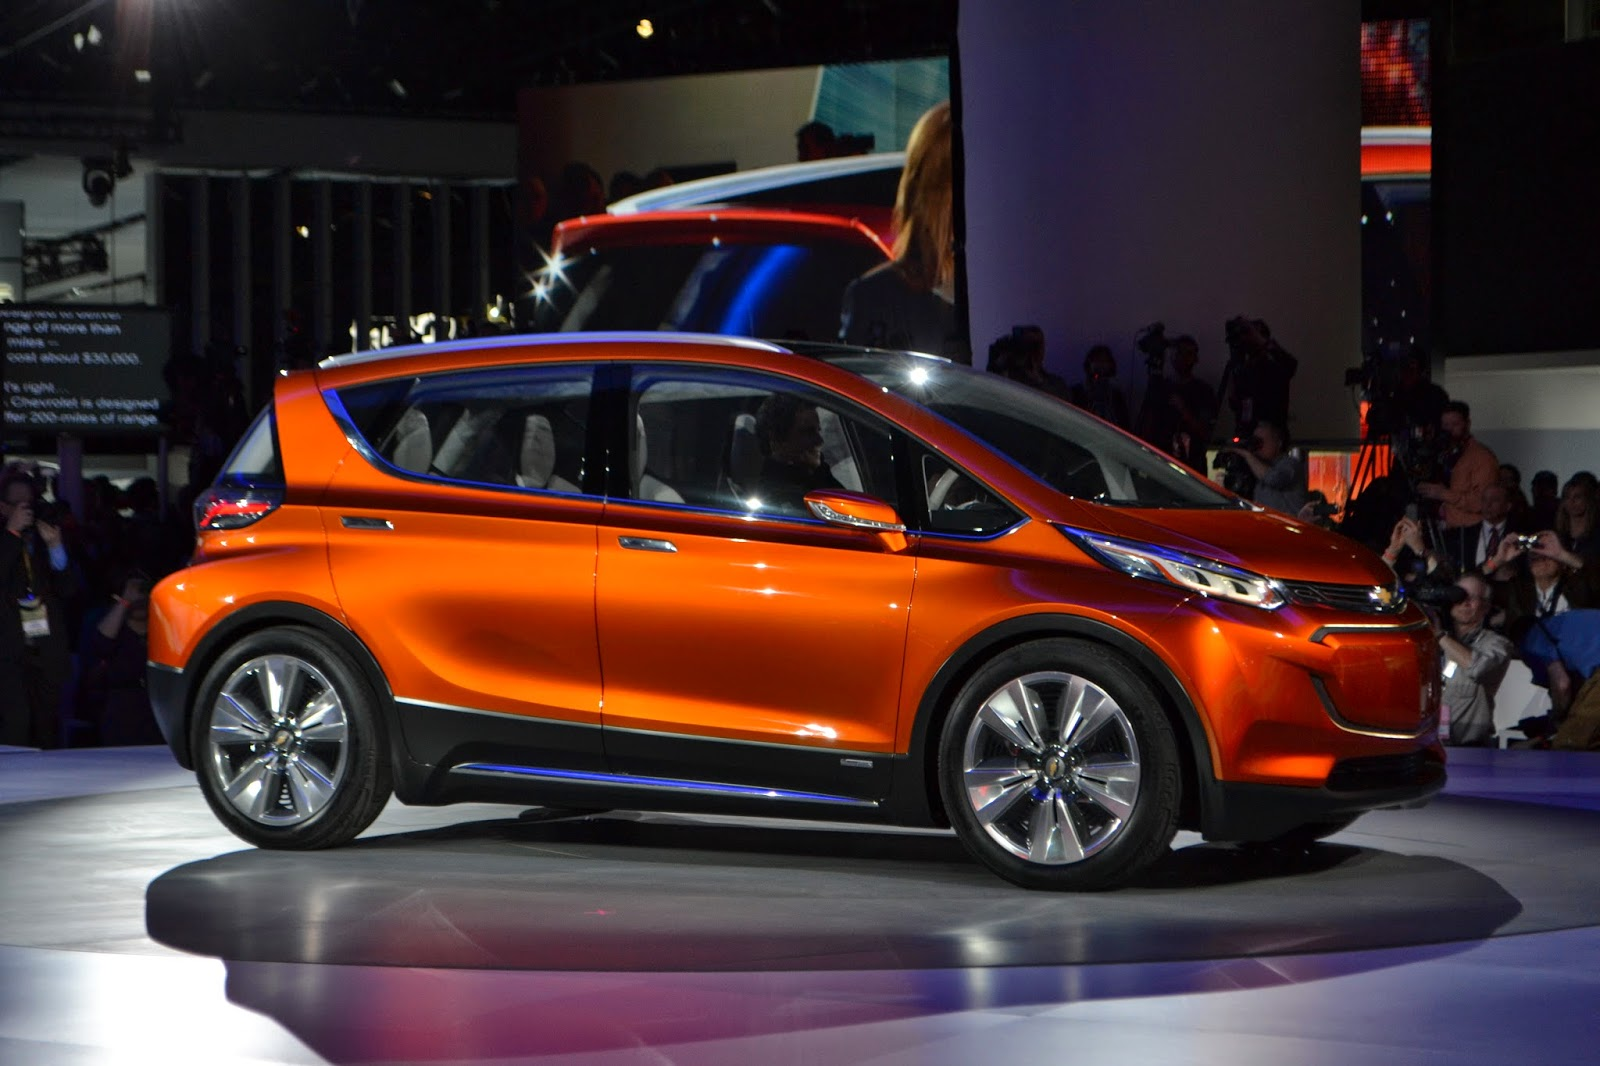 Chevrolet Detroit Auto Show Debut: Bolt Electric Car